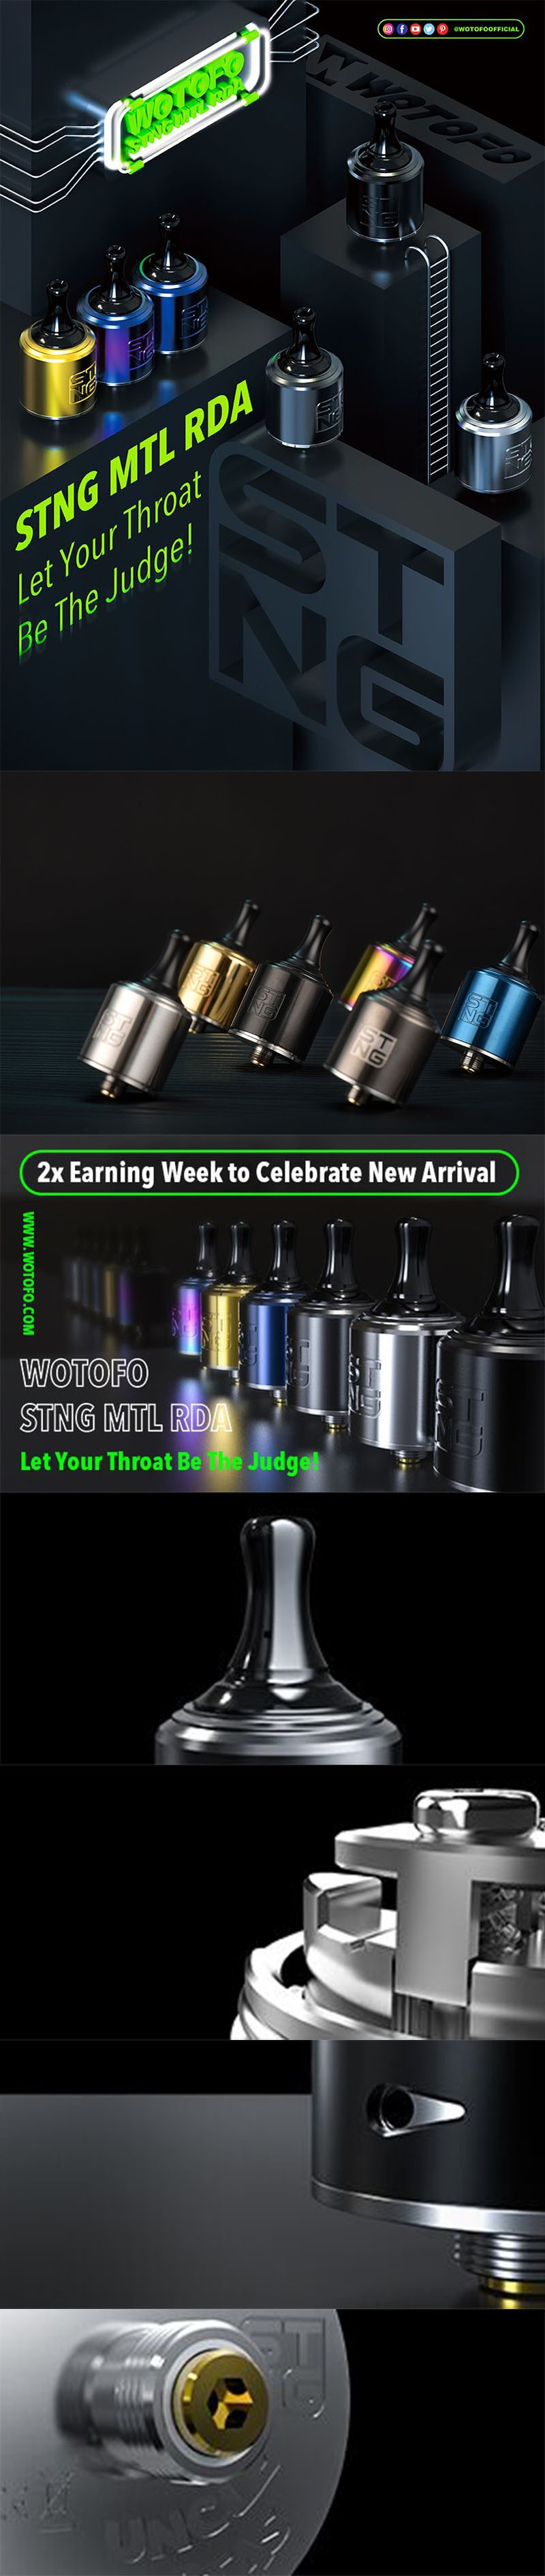 Wotofo STNG MTL RDA Rebuildable Dripping Atomizer